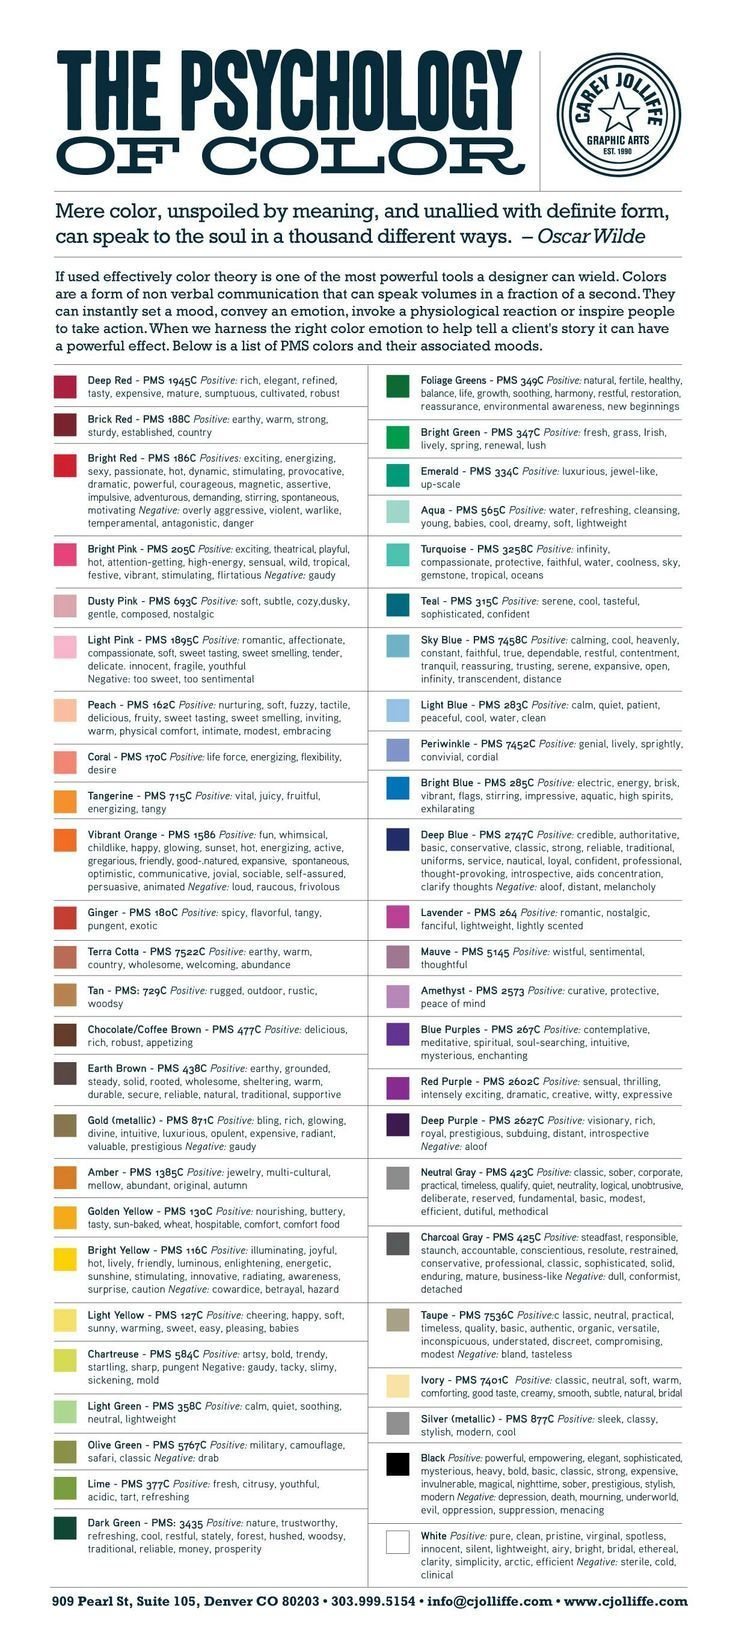 Struggling to find the perfect color for something? Try taking a look at the emotions that colors evoke in people before choosing the latest color pallet for a new project.